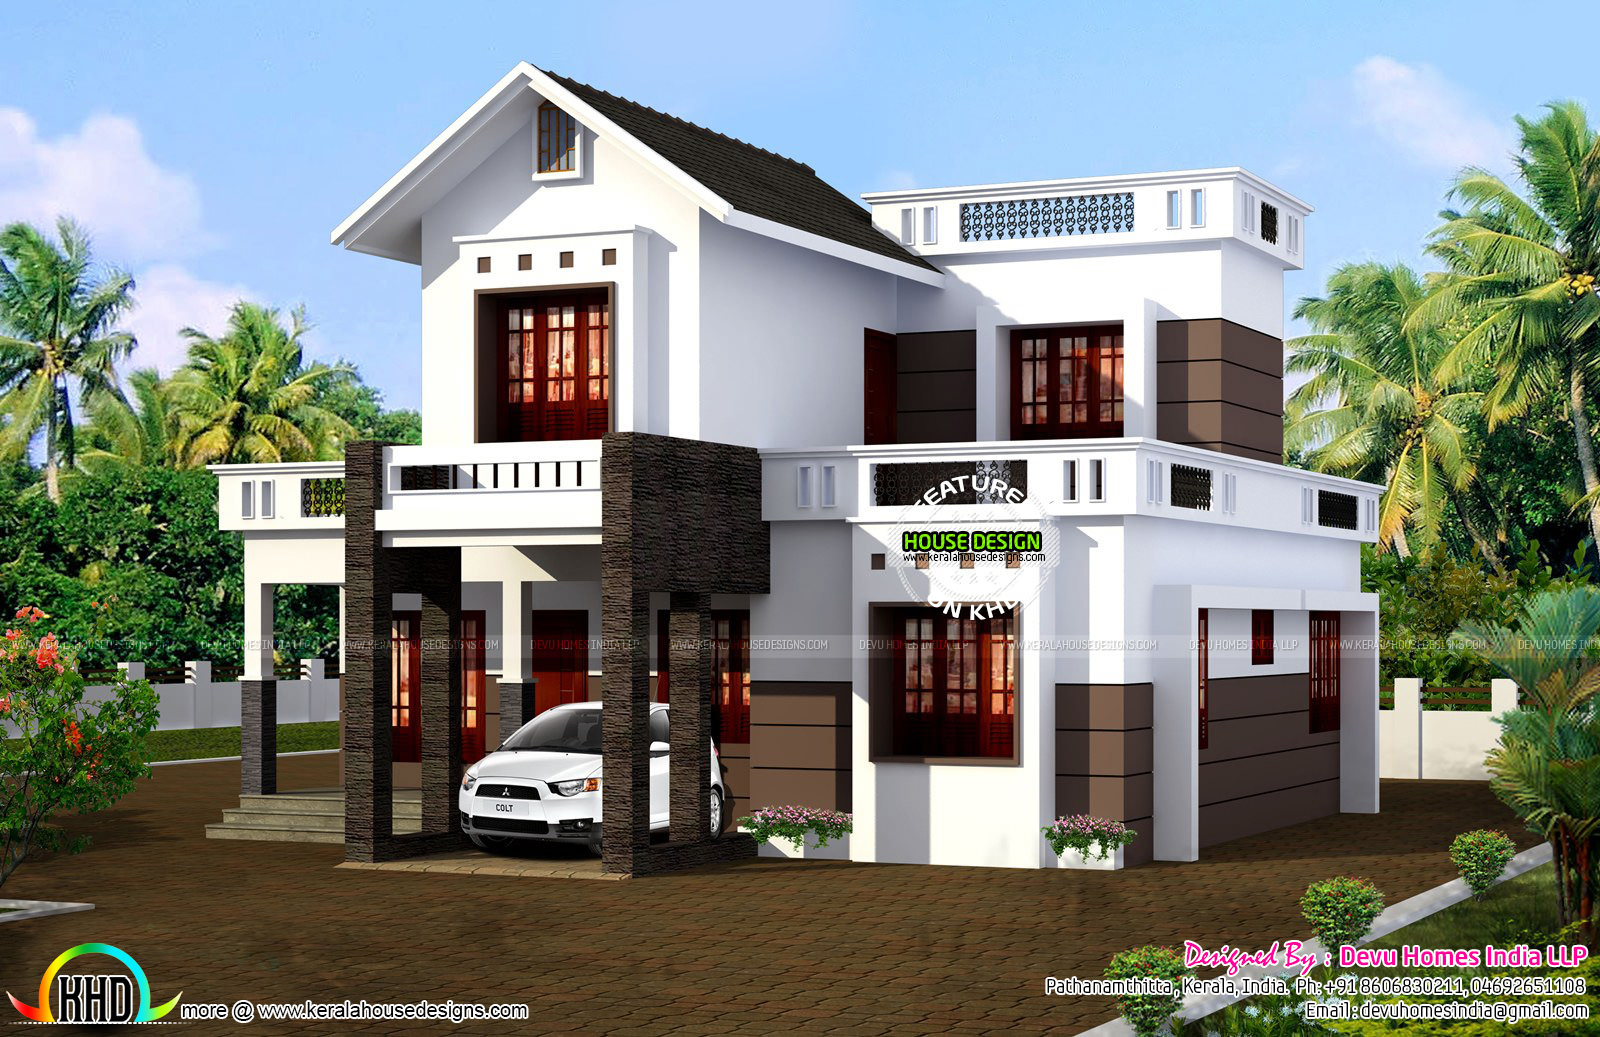 Simple 1524 sq ft house plan kerala home design and for Simple house plans